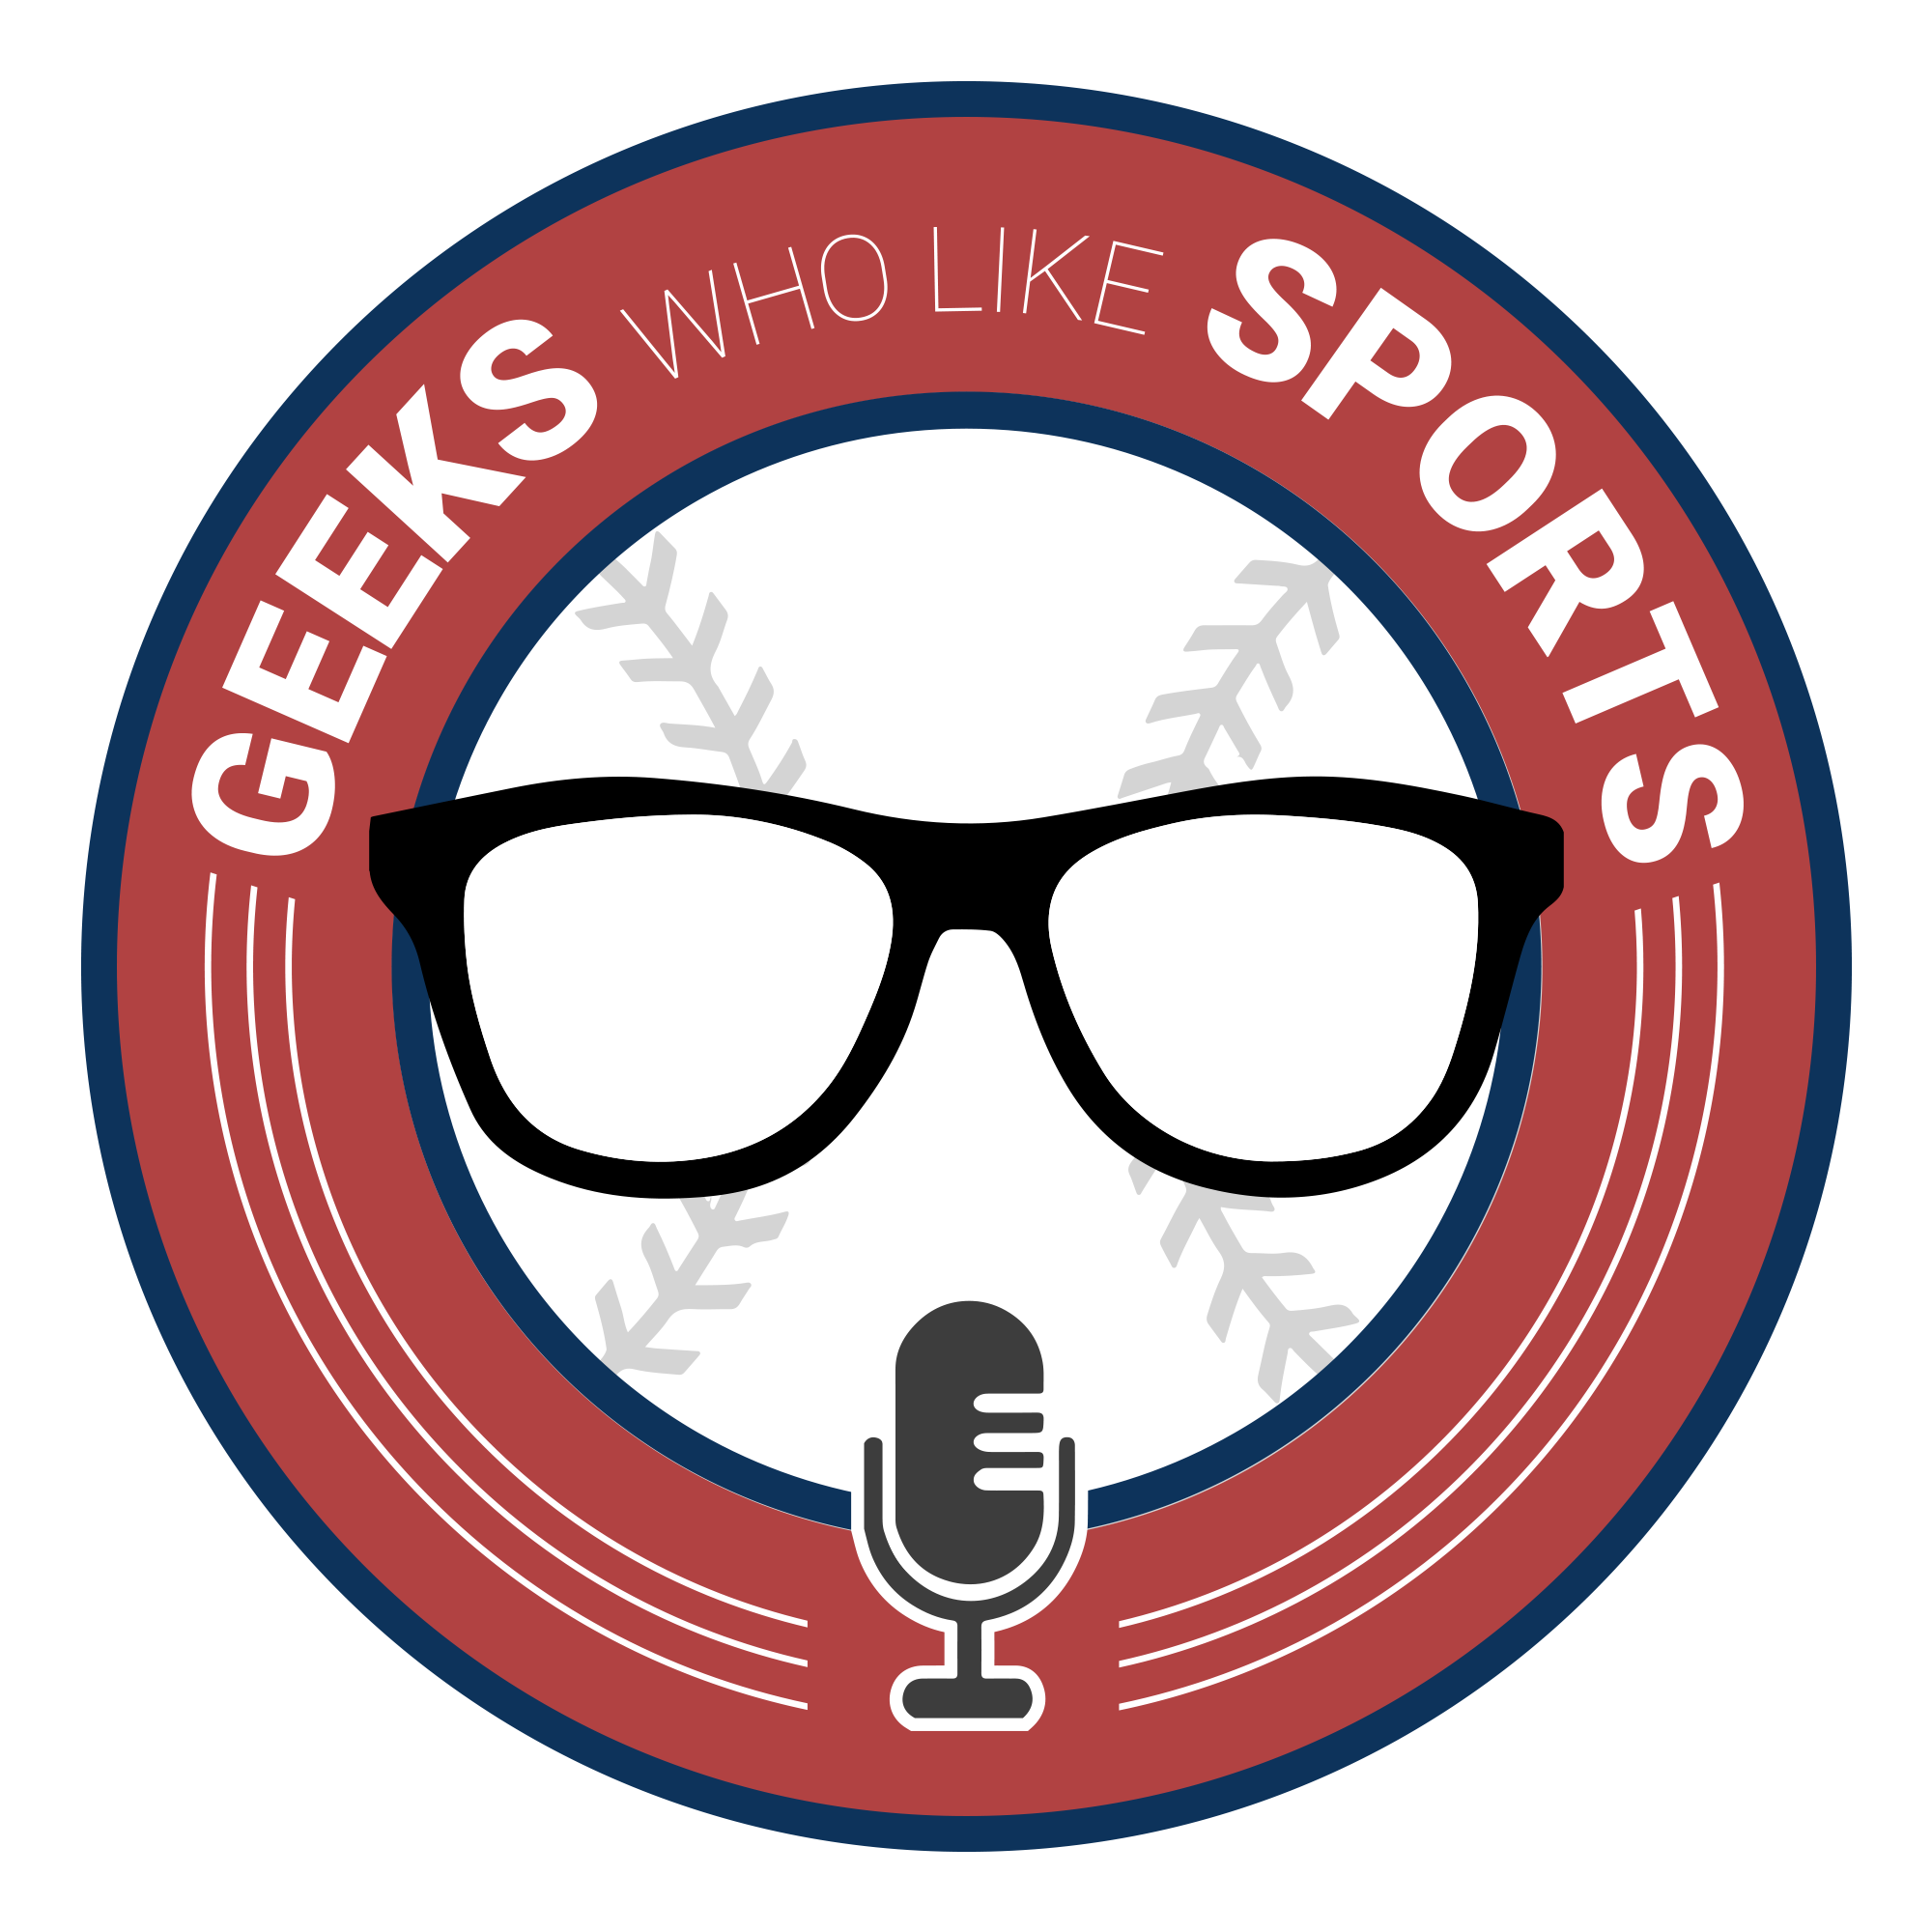 LISTEN to the GEEKS WHO LIKE SPORTS PODCAST - If you love all things geek and all things sports, this is your podcast.